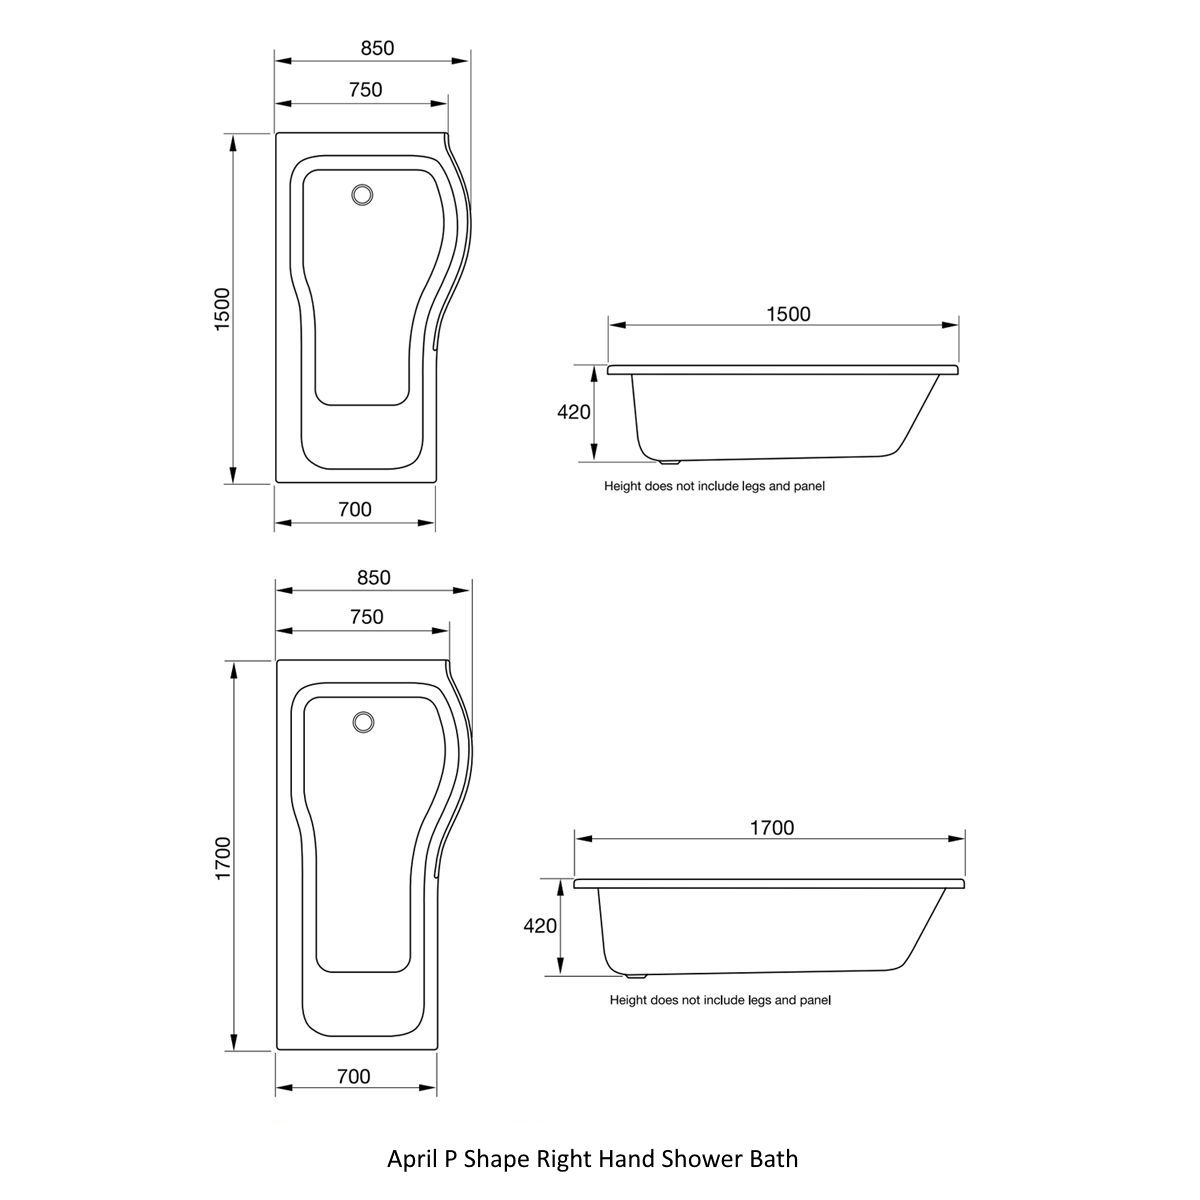 April P Shape Right Hand Shower Bath Dimensions